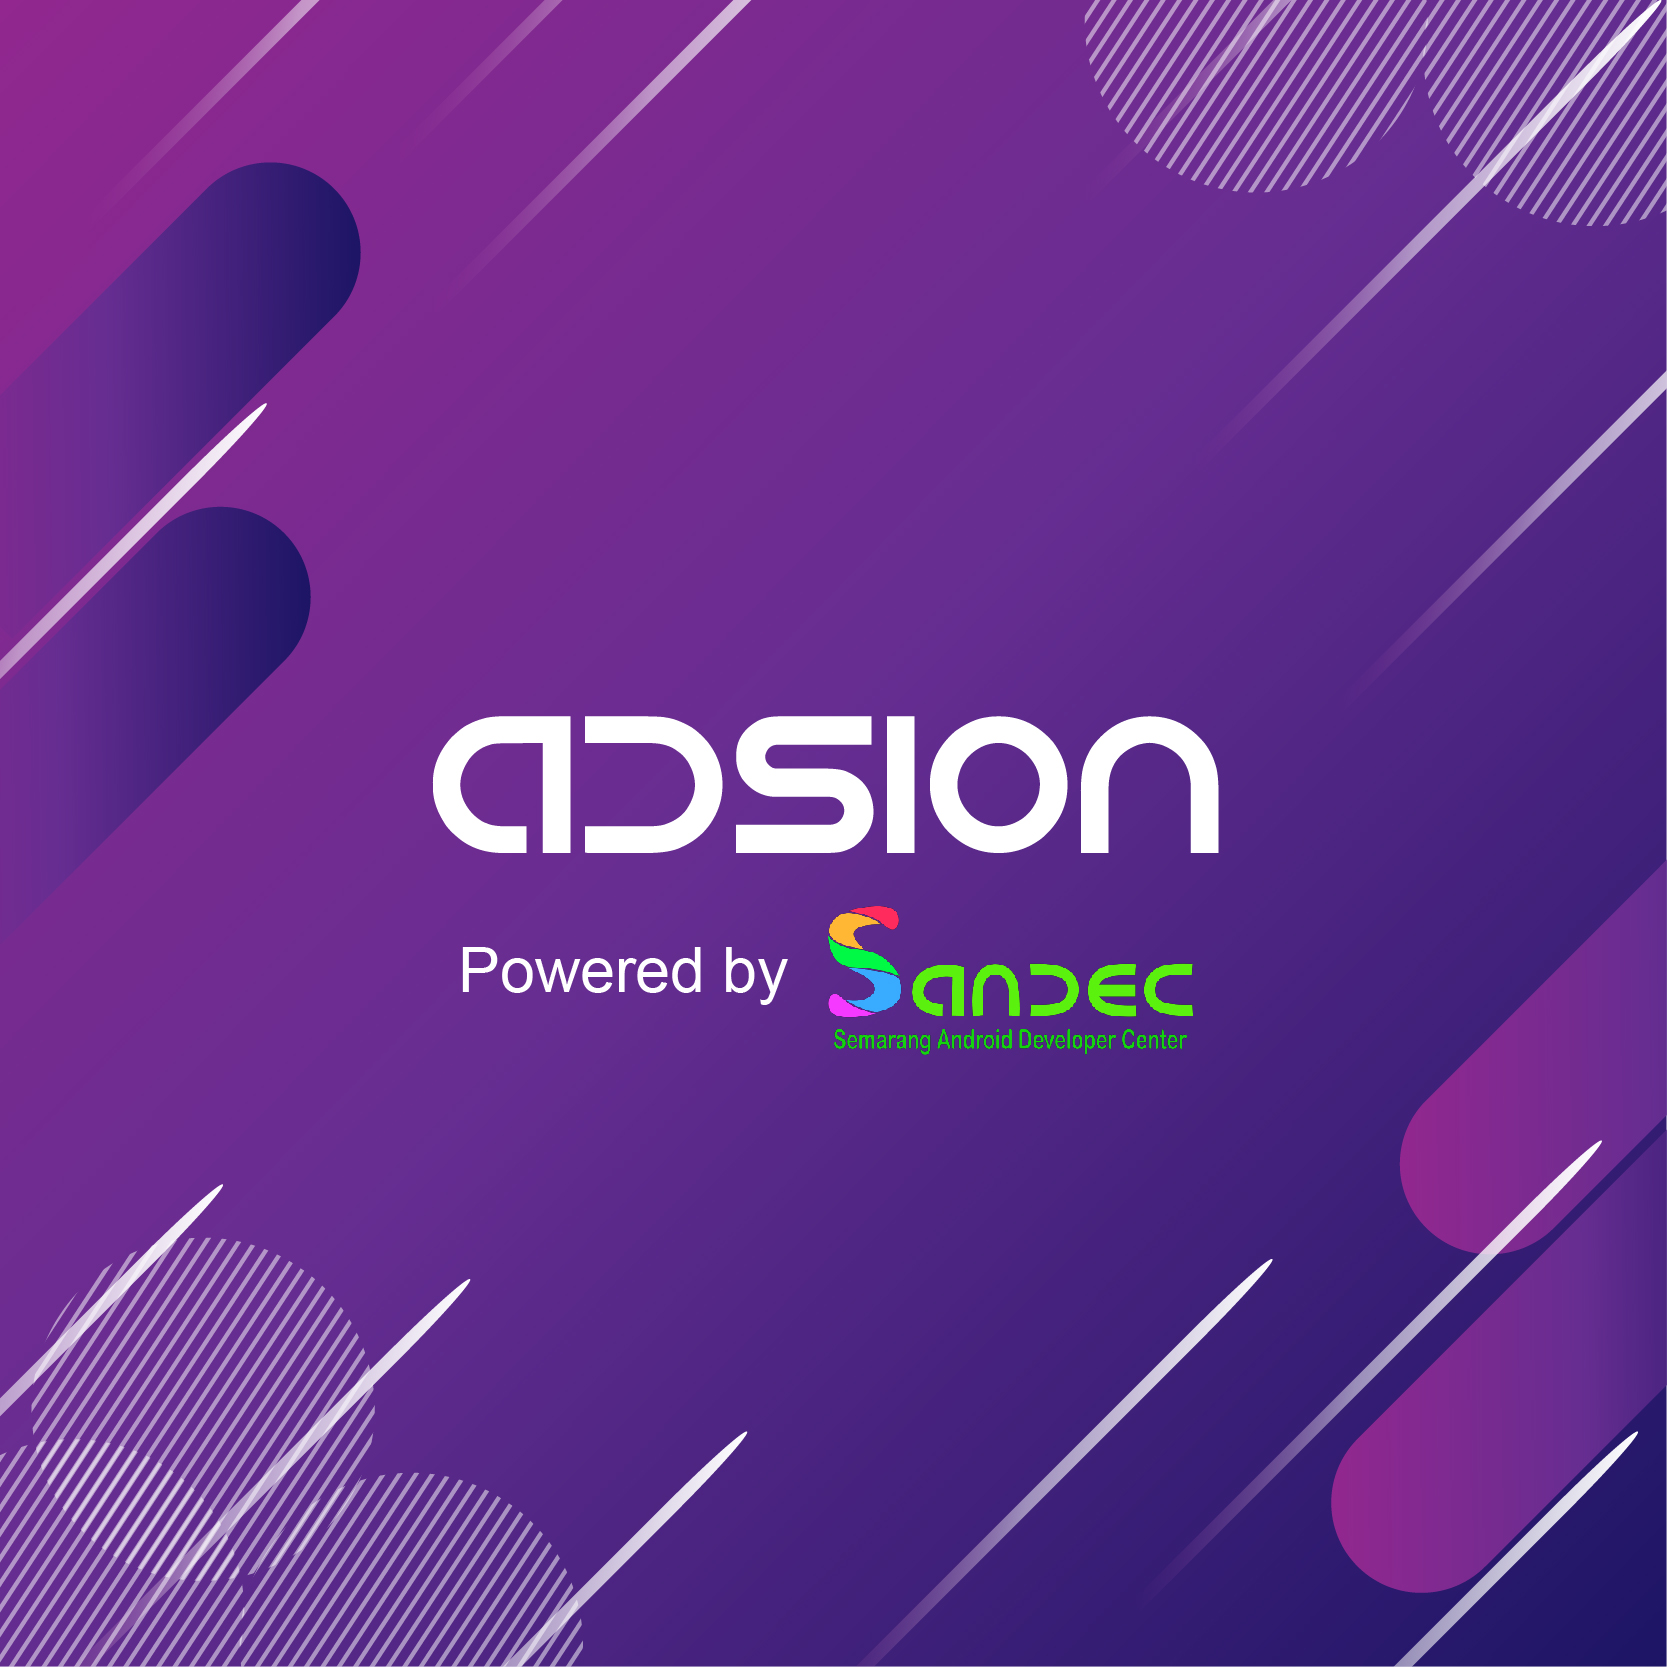 ADSION (Android Developer Sharing and Action)